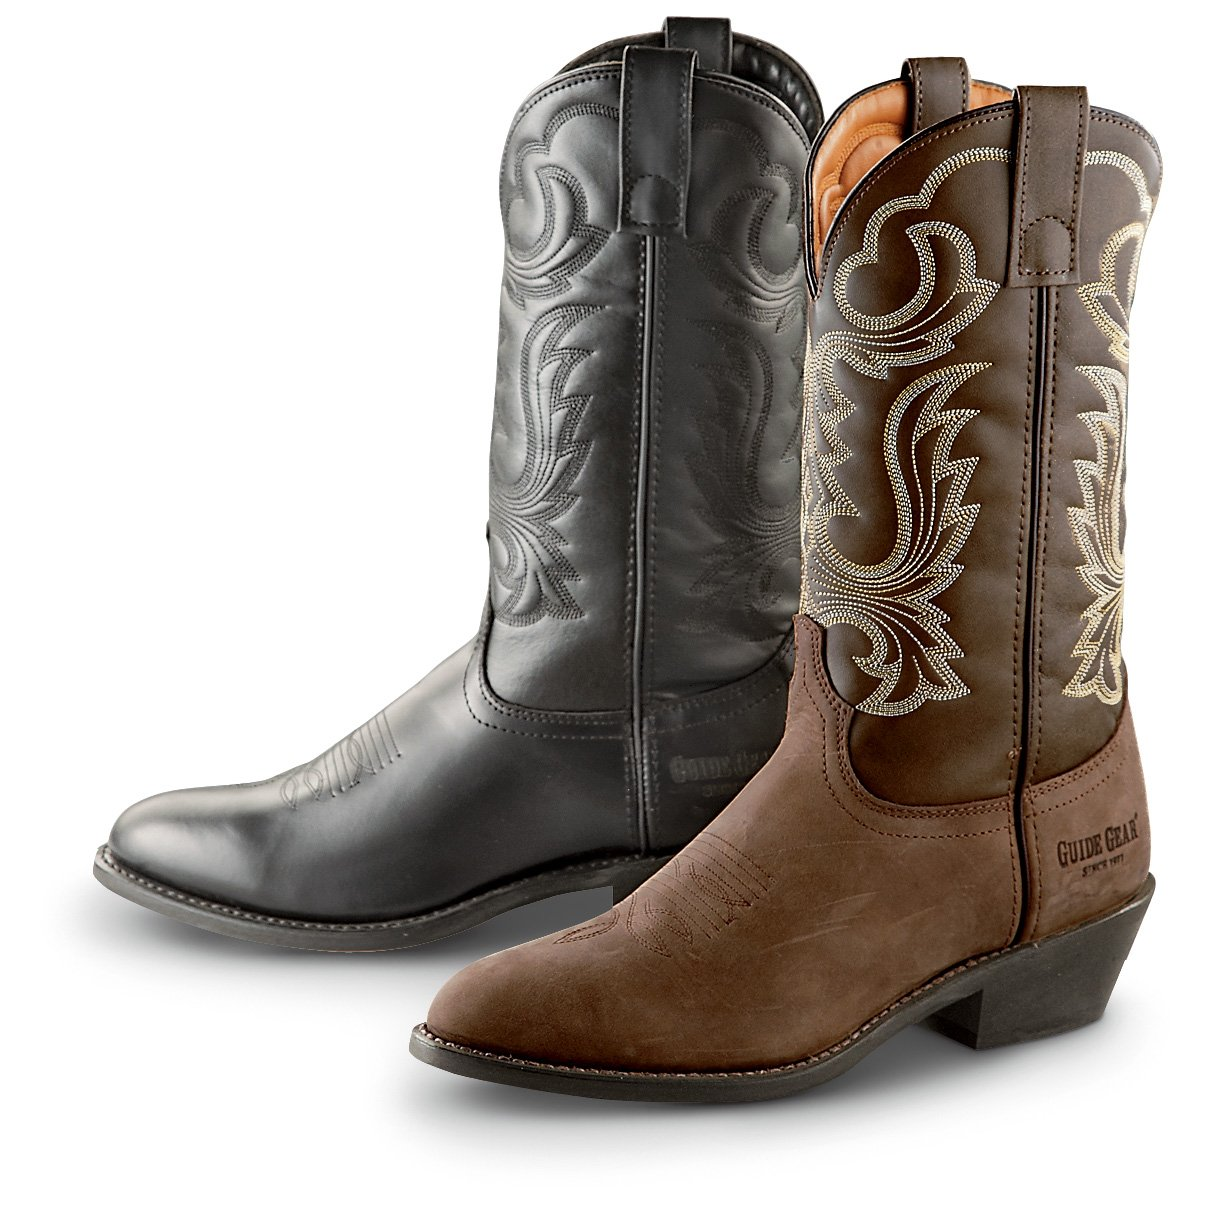 Genuine Cowboy Boots Bsrjc Boots